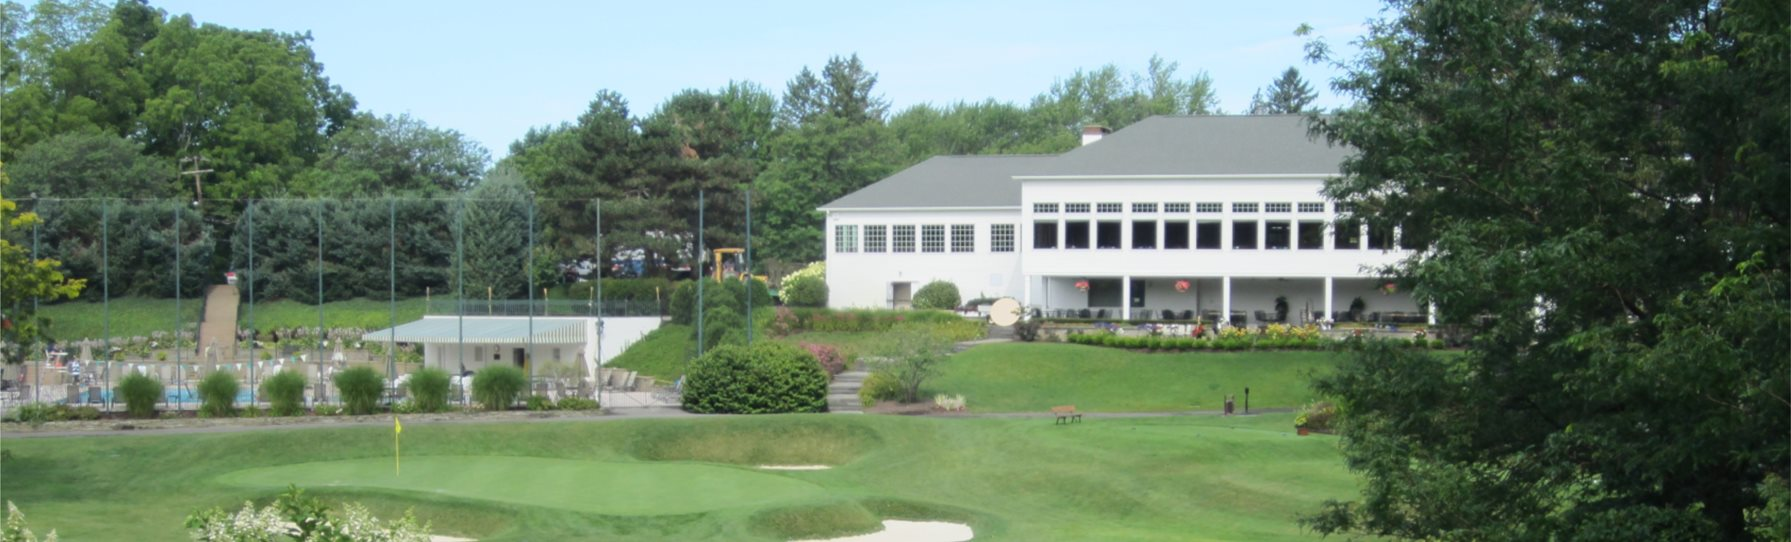 Orchard Park Country Club - Orchard Park, NY - Home